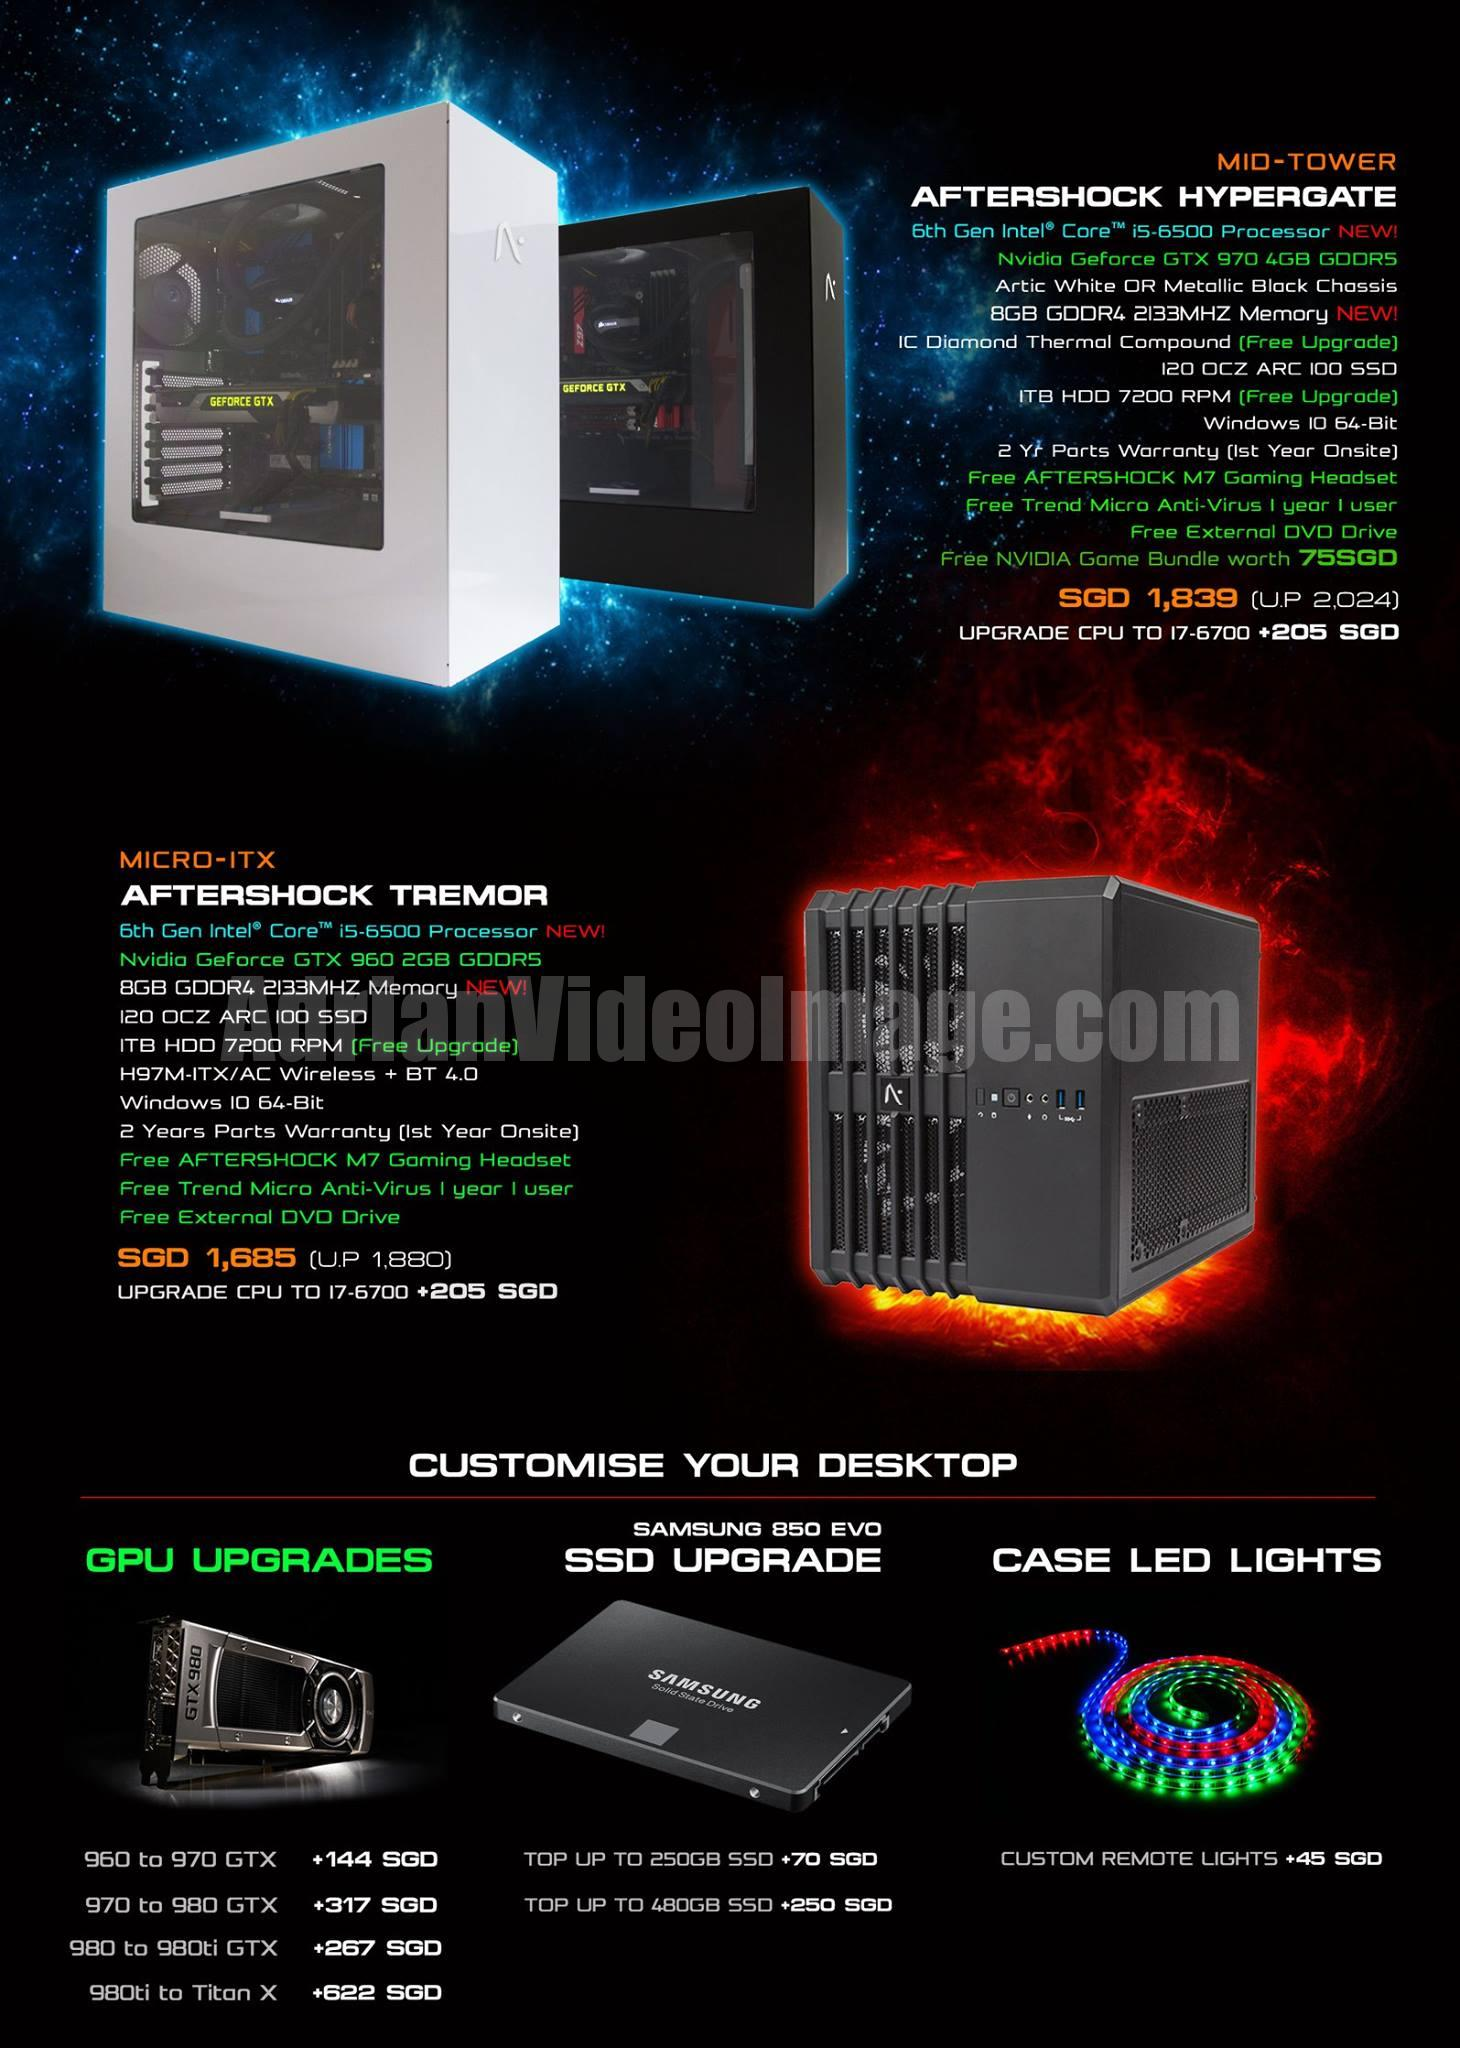 AfterShock PC Promotion 2015 - pg6 - Hypergate / Tremor / Customise